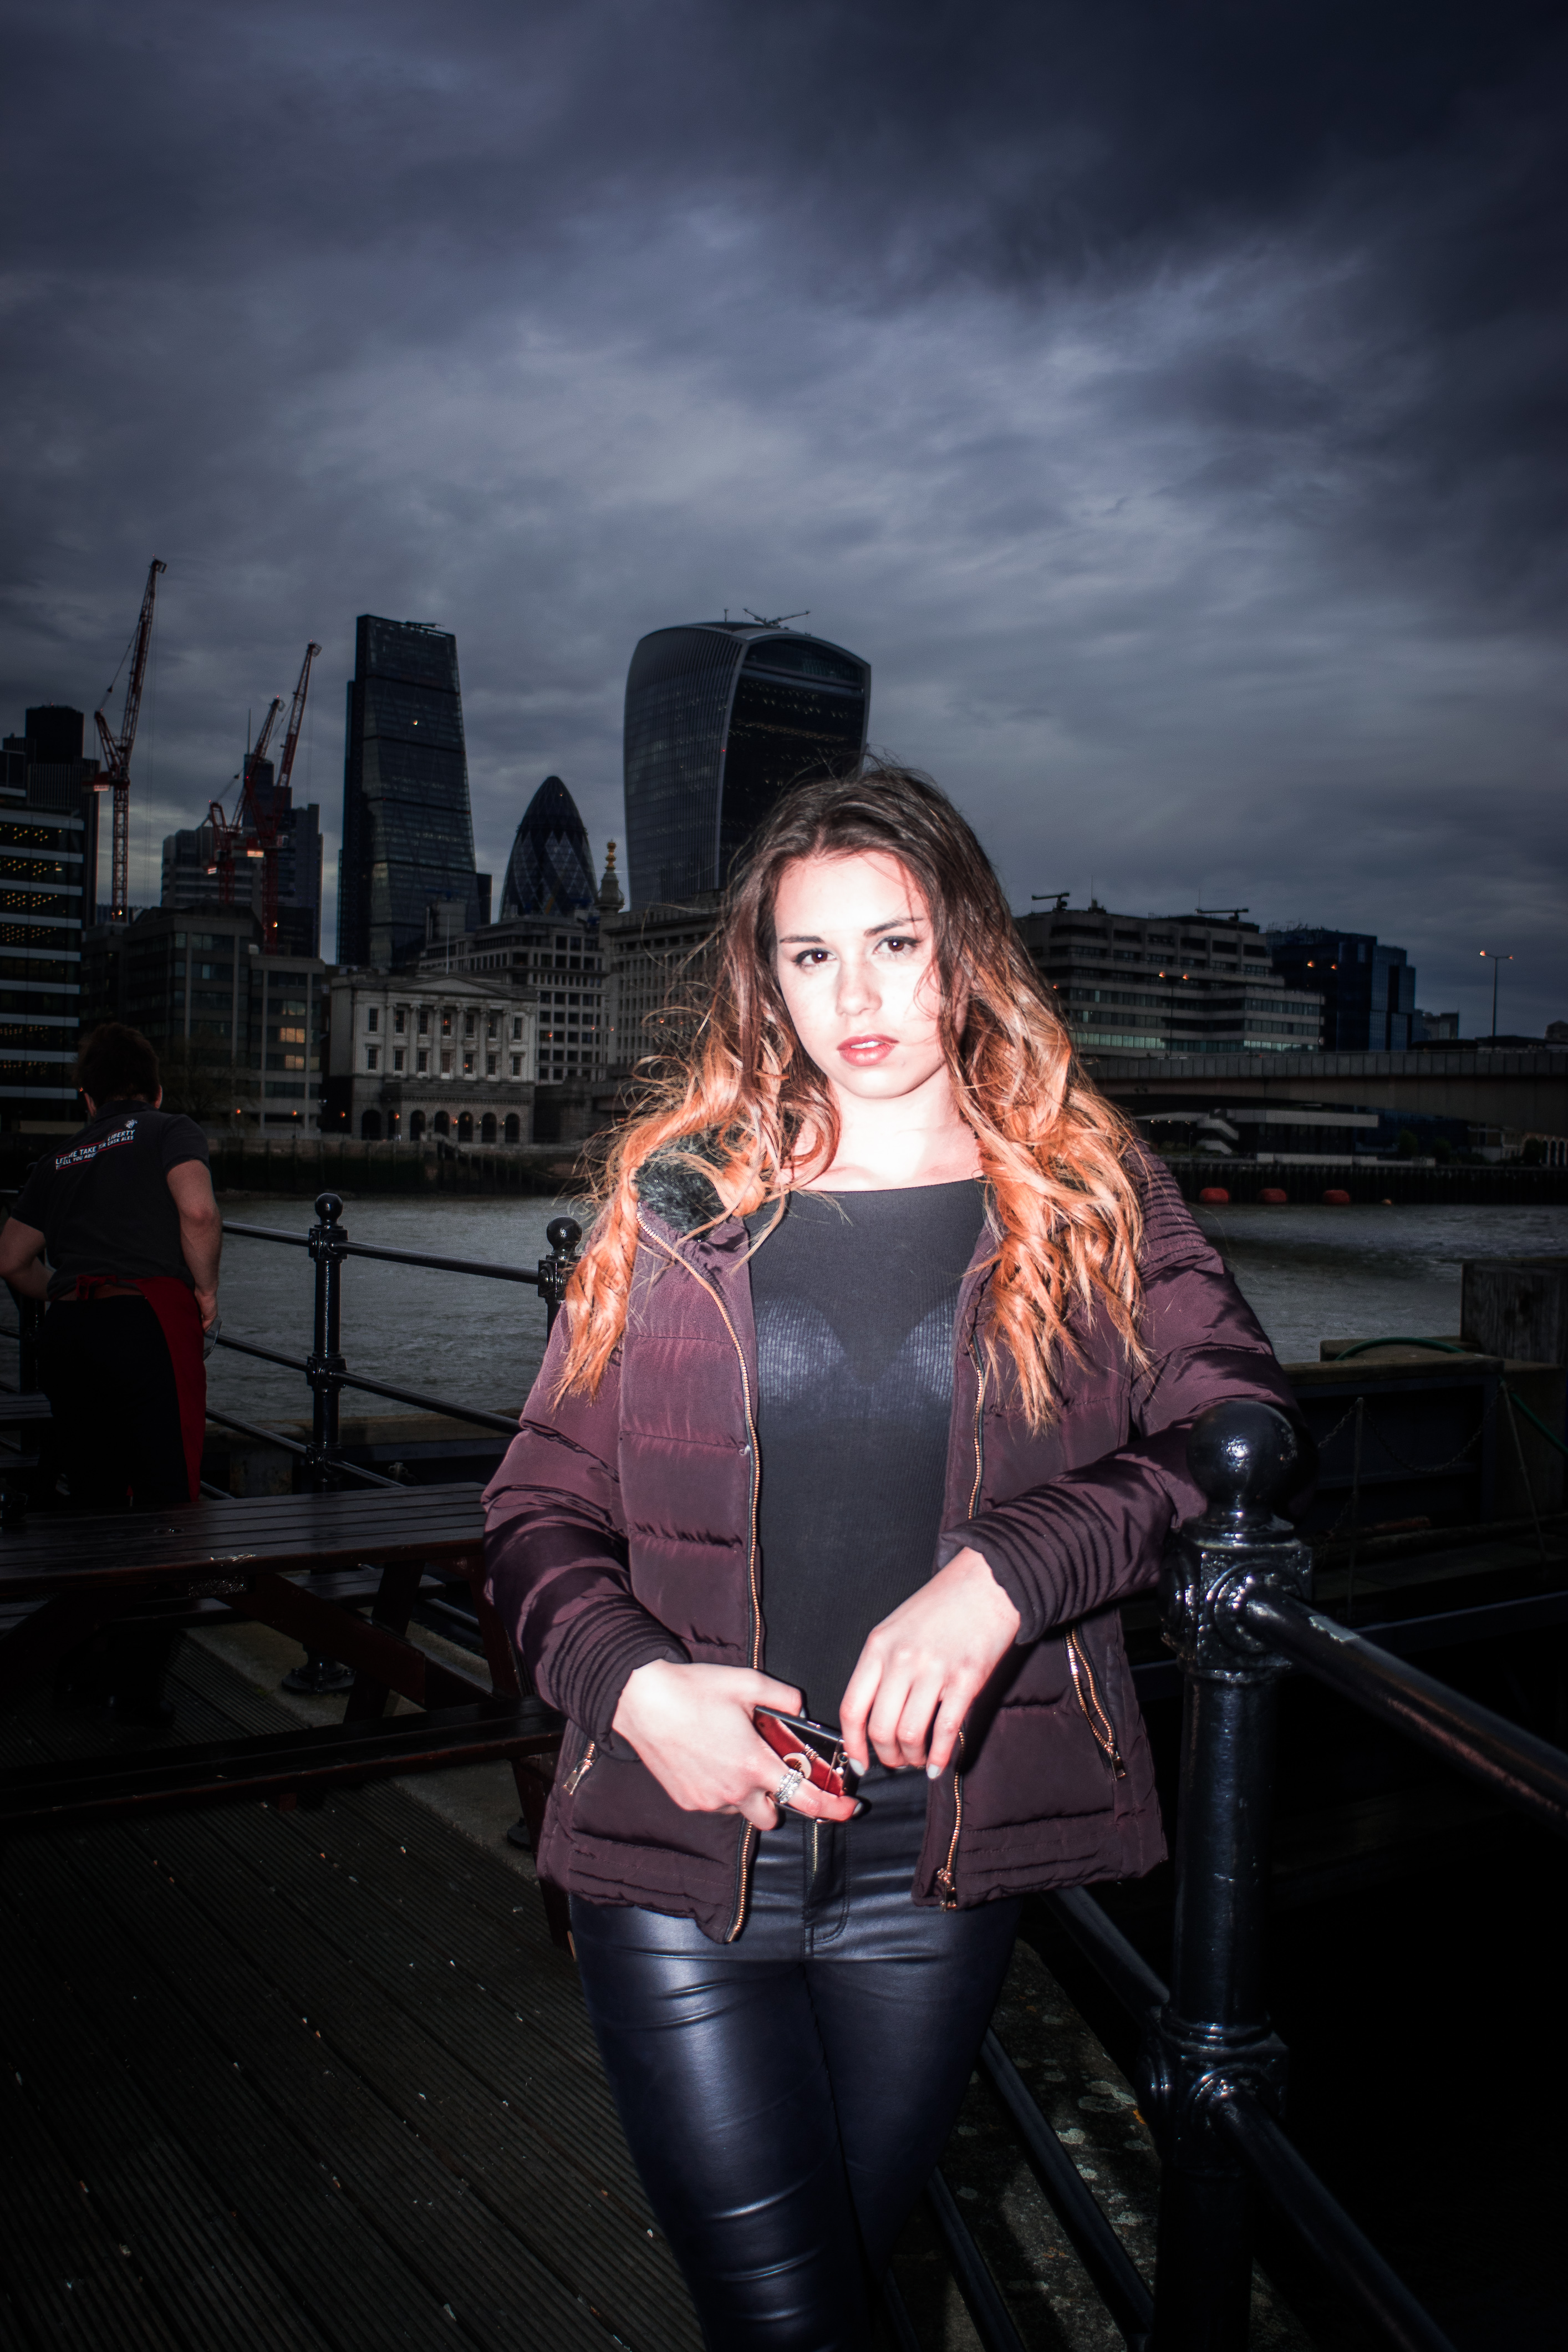 London Photoshoot Mar 16